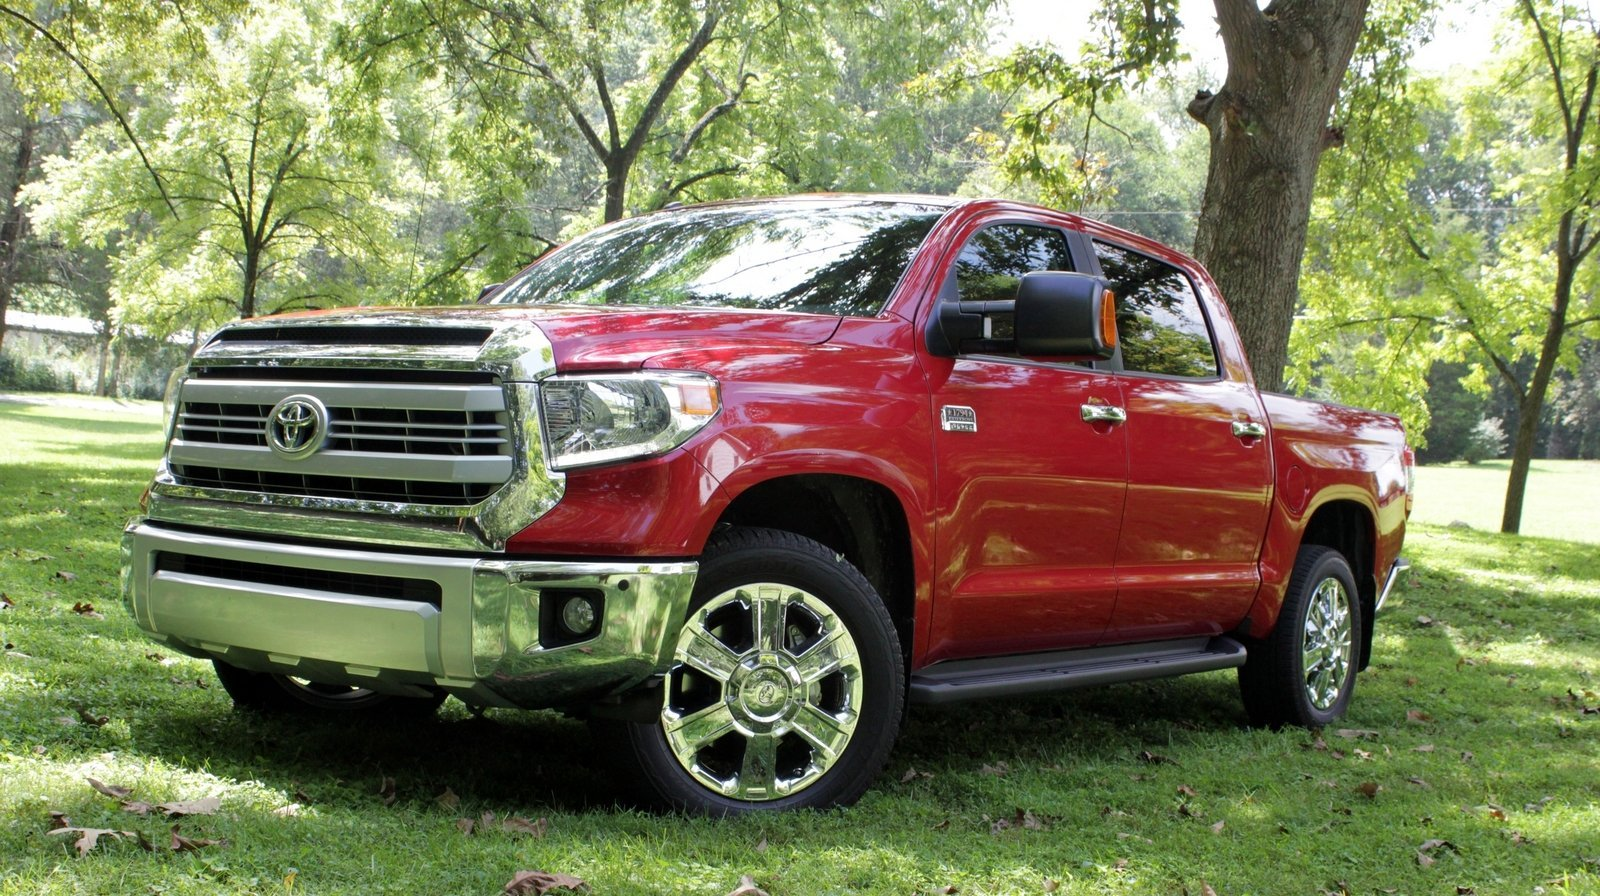 2014 Toyota Tundra 1794 - Driven | Top Speed